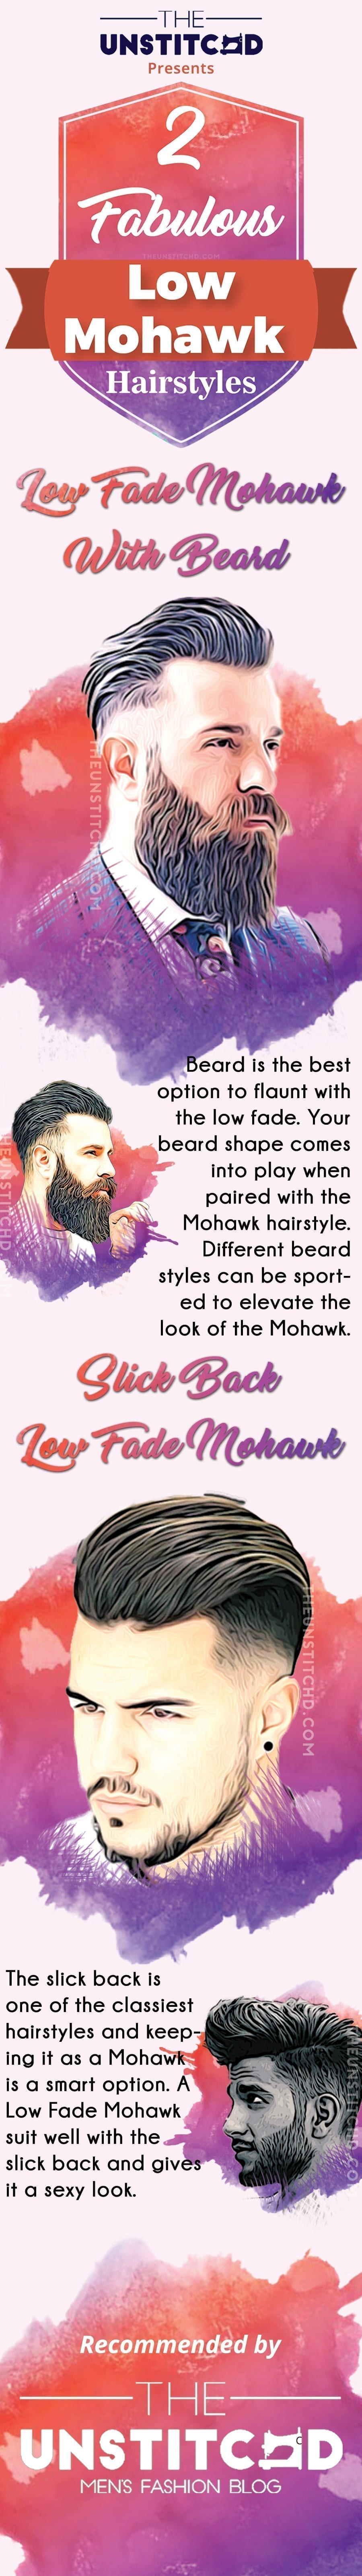 low-mohawk-hairstyle-info